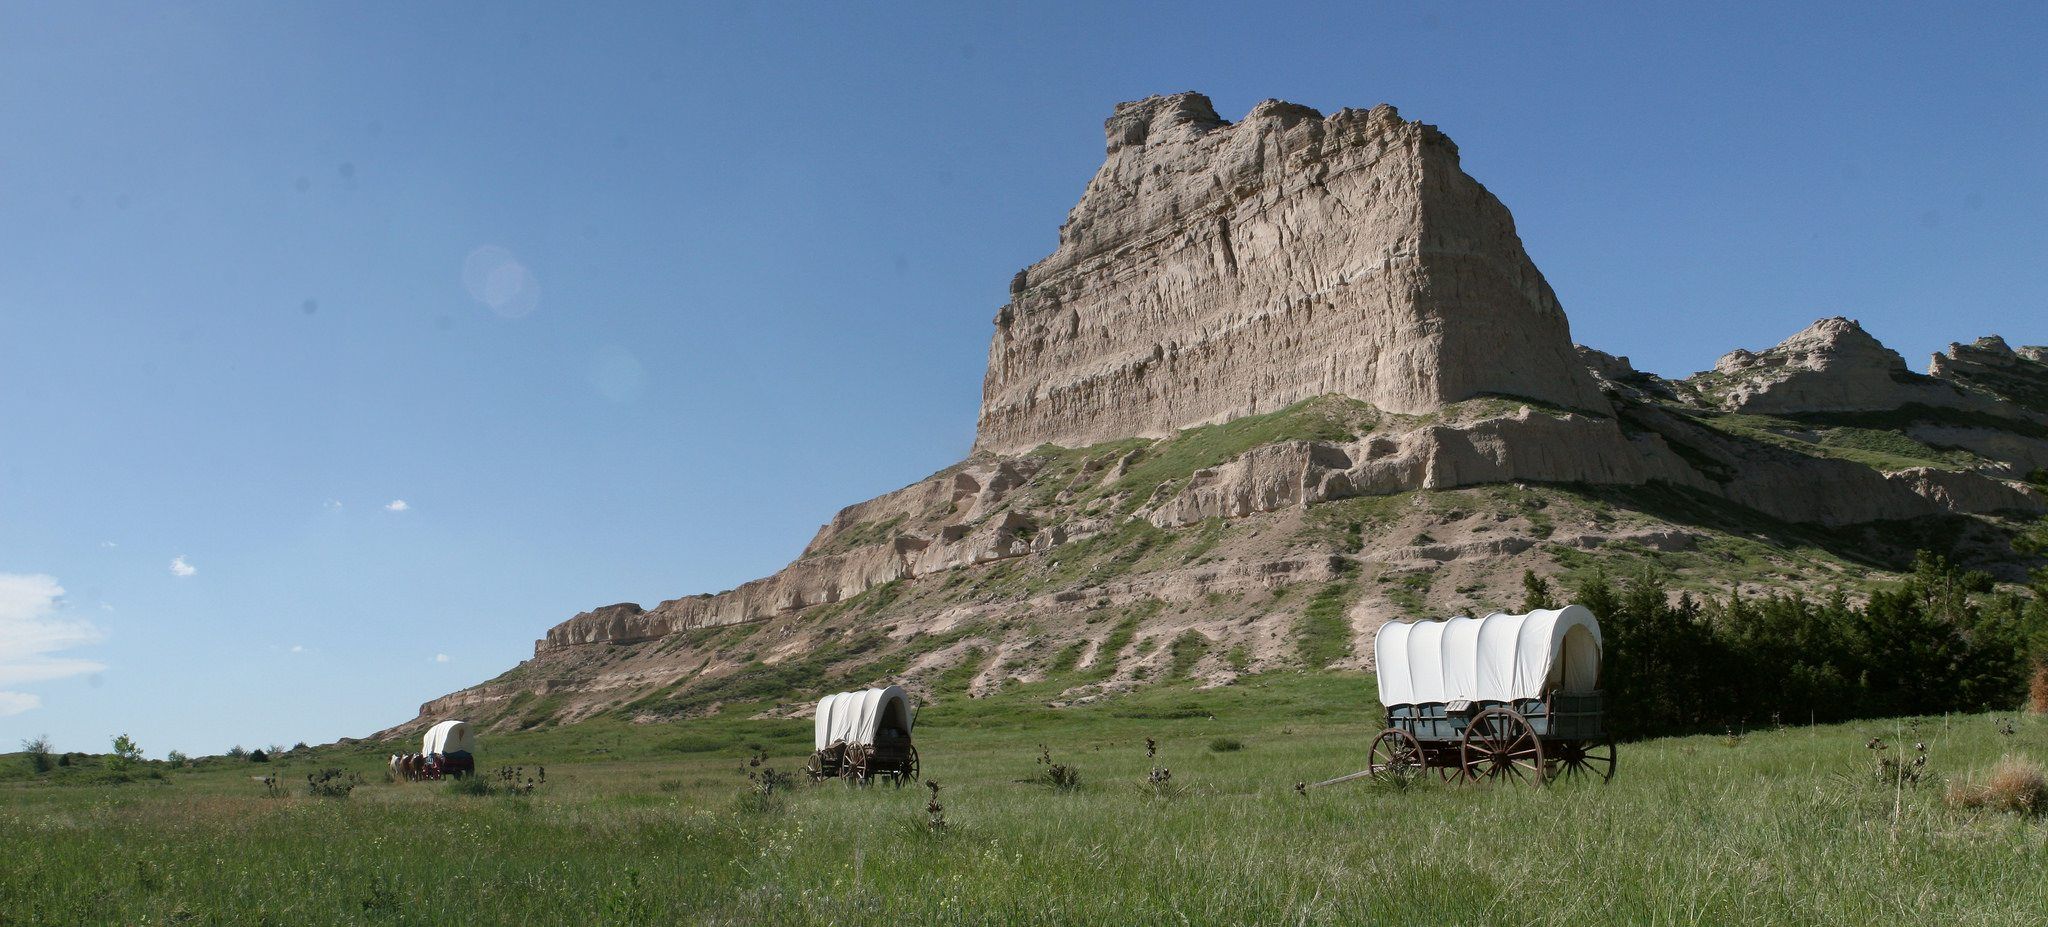 Explore Scotts Bluff National Monument